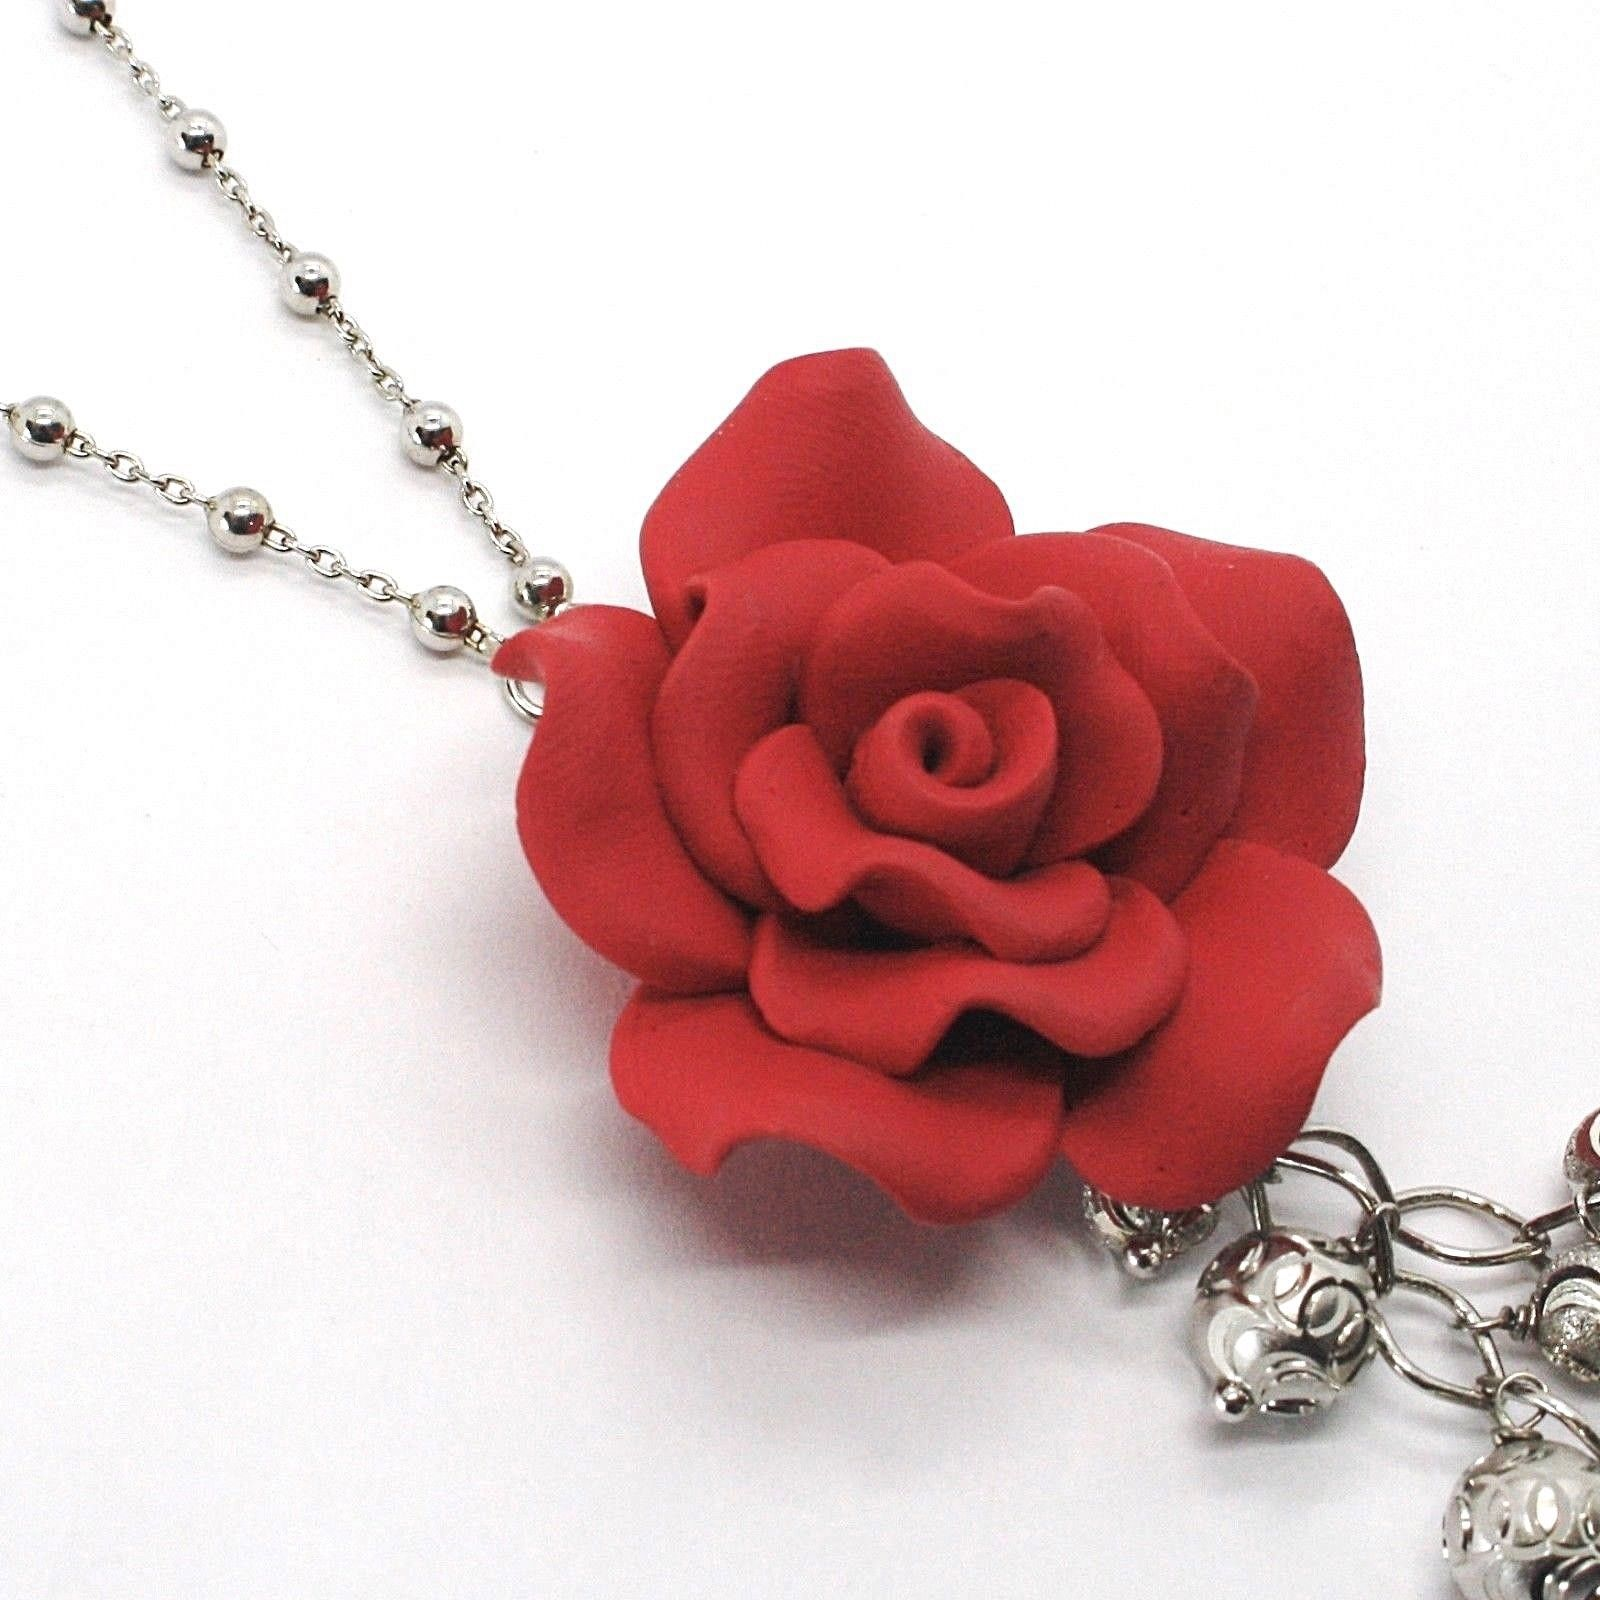 SILVER 925 NECKLACE, ONYX BLACK, PINK RED, FLOWER, CHAIN BALLS